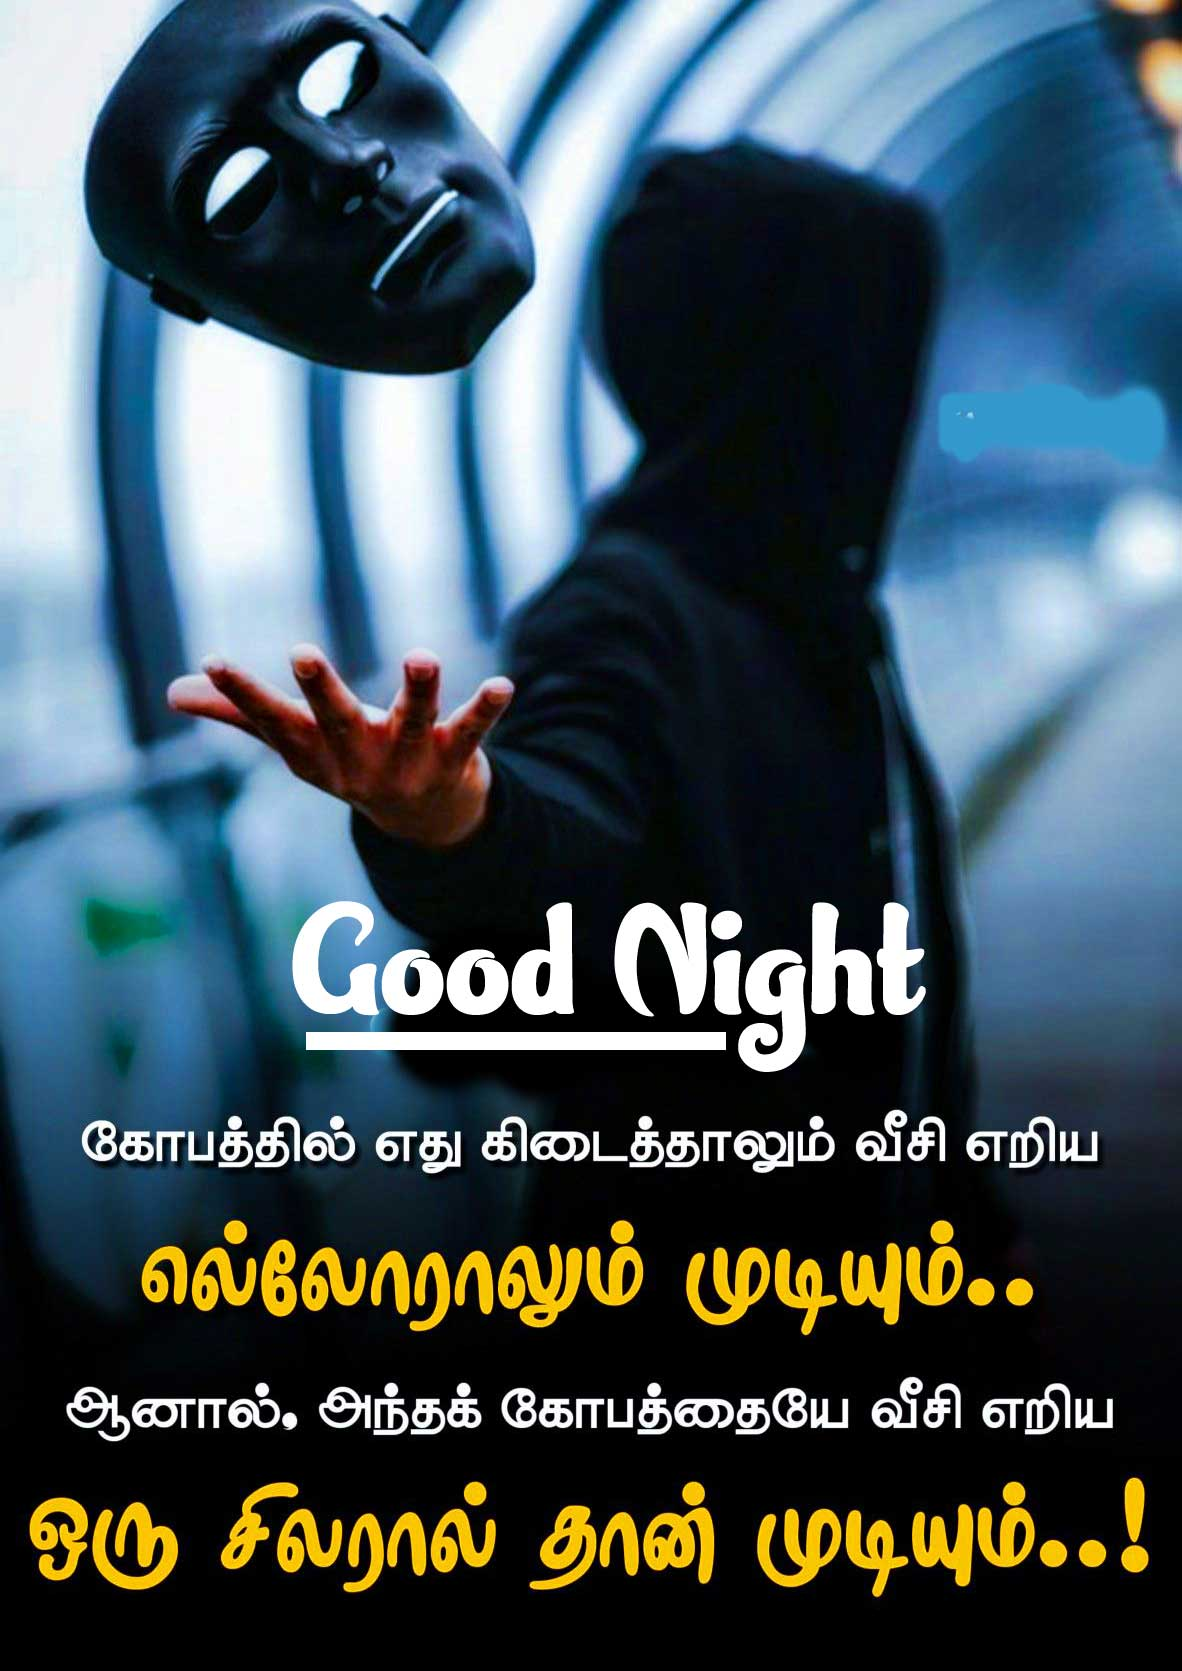 Tamil Good Night Wishes Images Wallpaper for Whatsapp